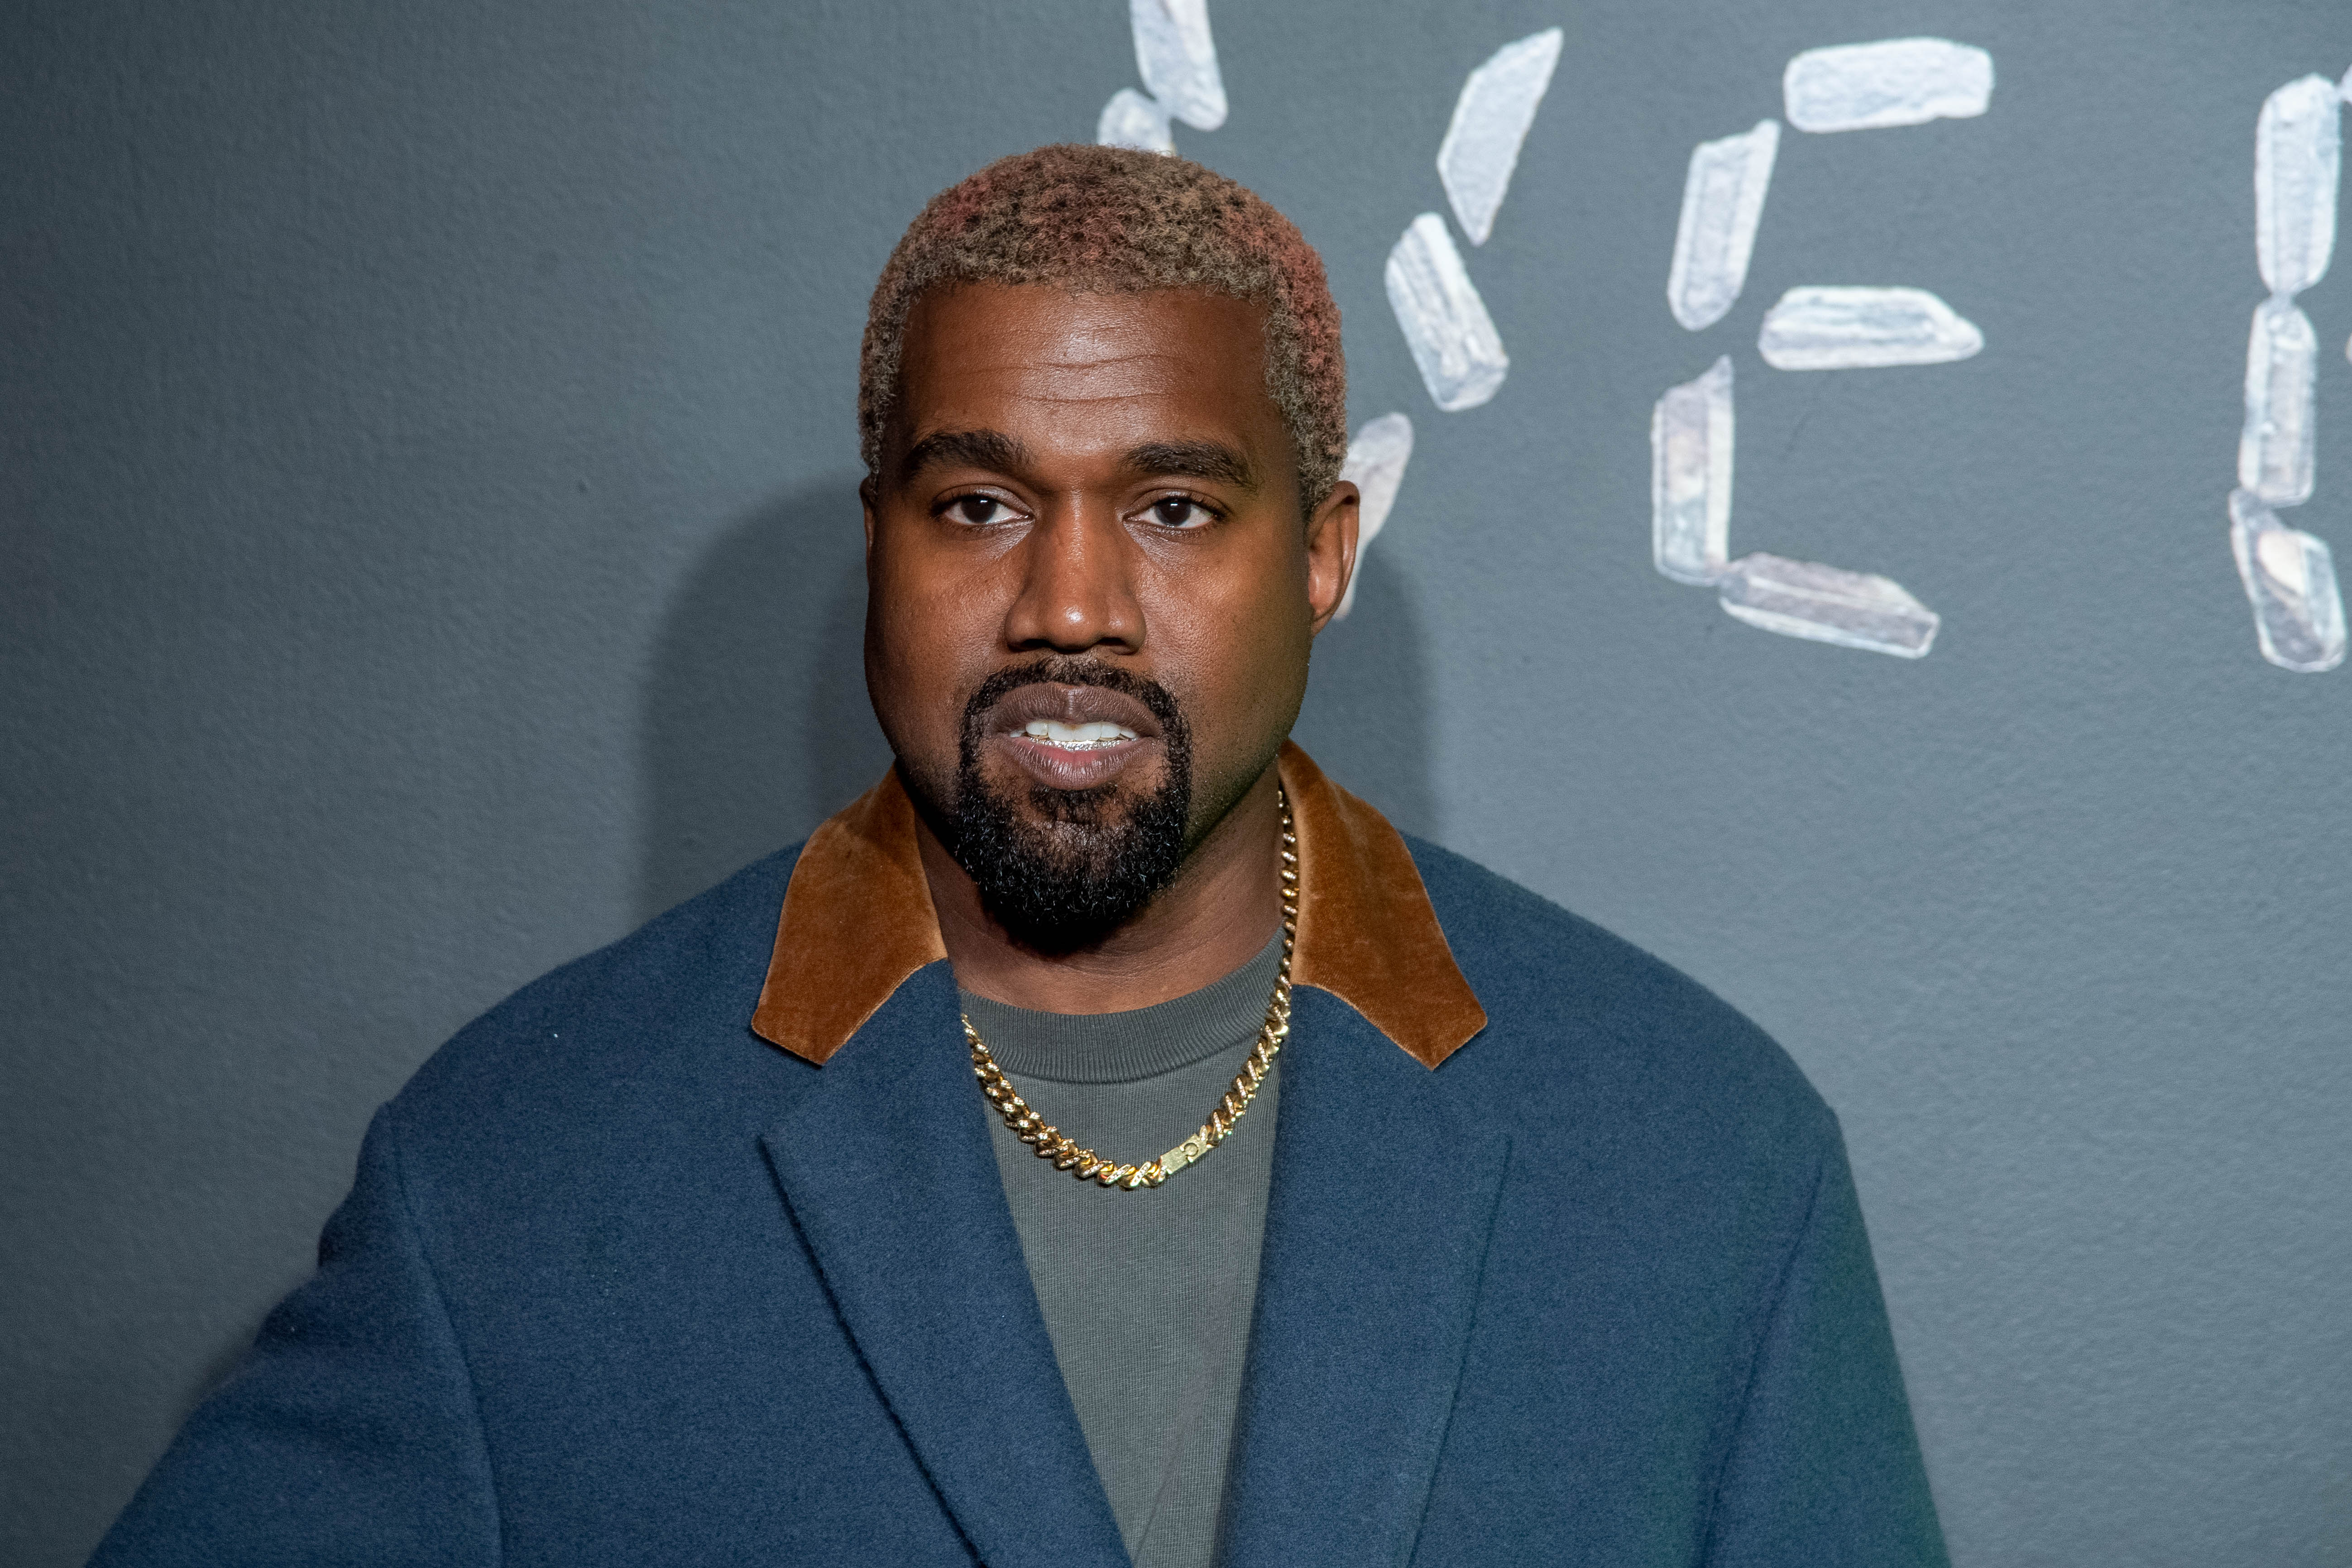 Kanye's Family Reportedly Concerned He's In Midst Of Bipolar Disorder Episode